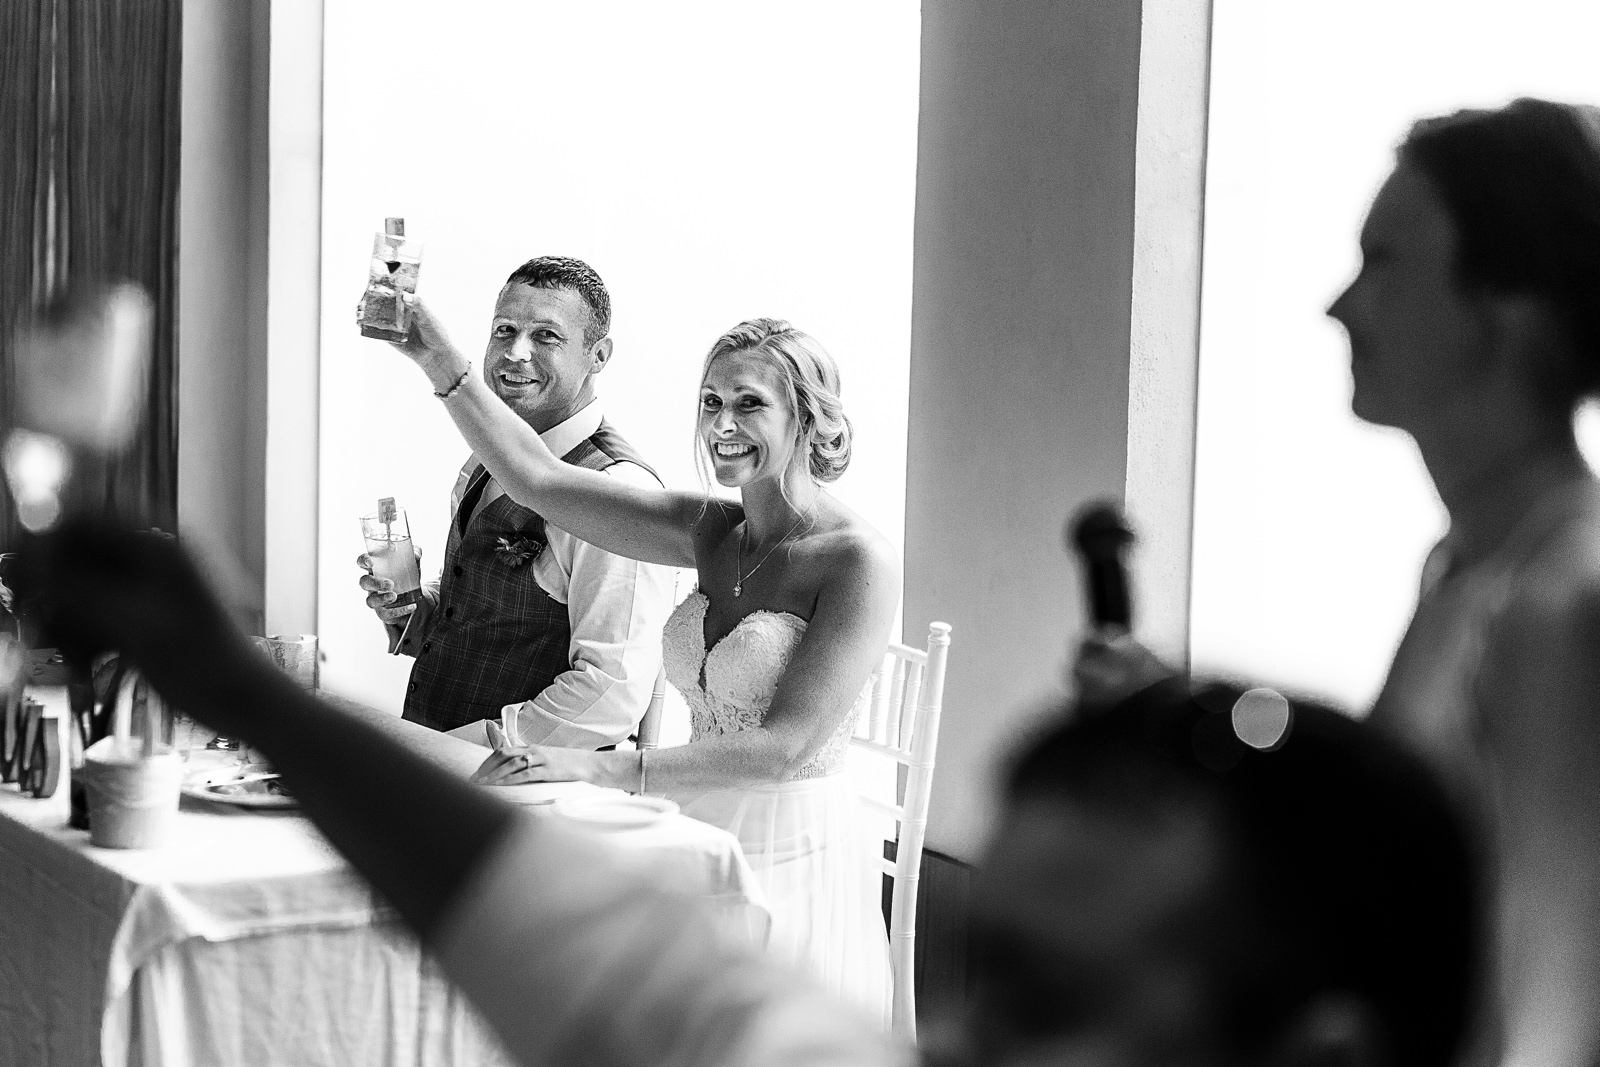 Groom and bride raise their champagne glasses at bridesmaids toast and speech